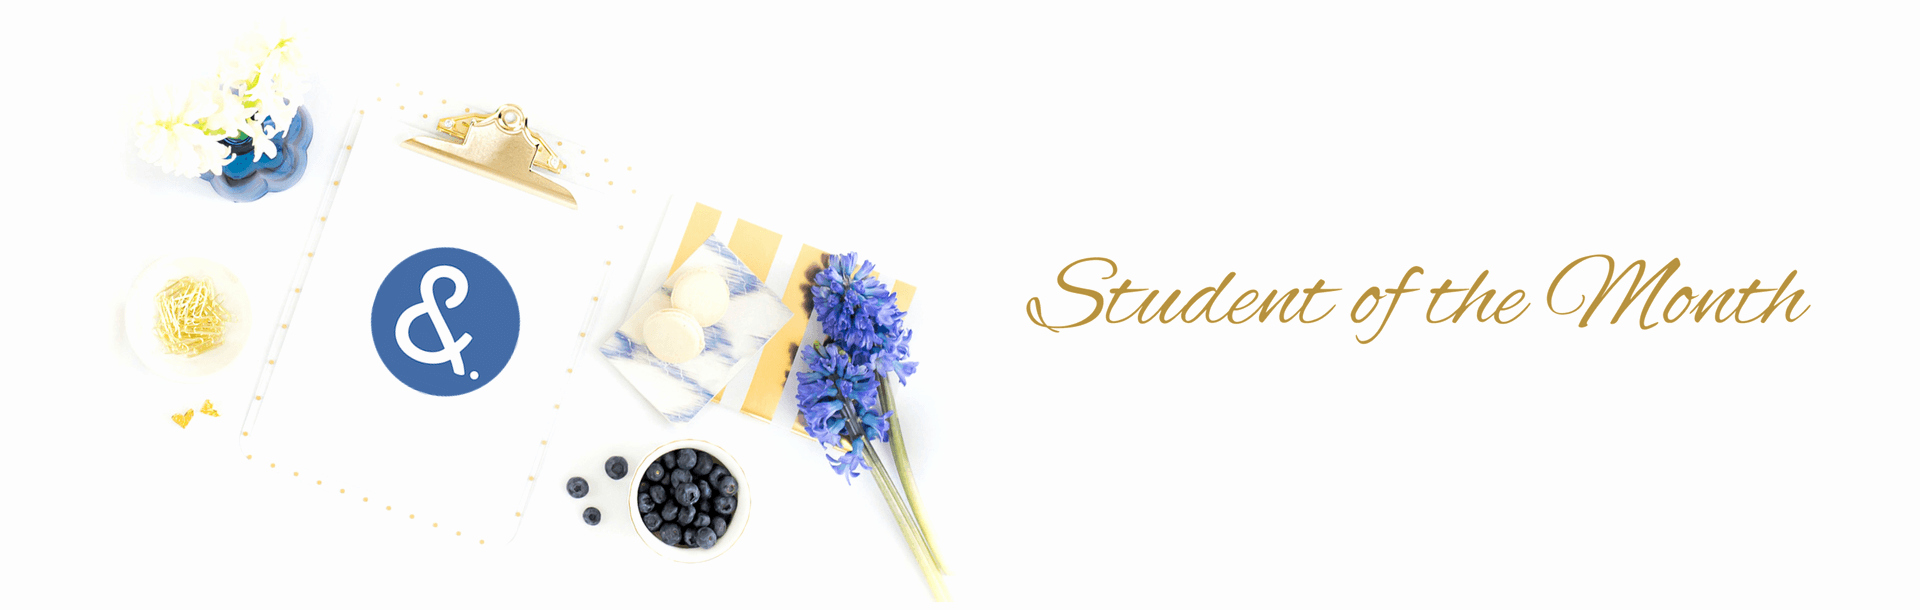 Student Of the Month Banner Elegant Kym Jackson Shen Wedding and event Planning Courses